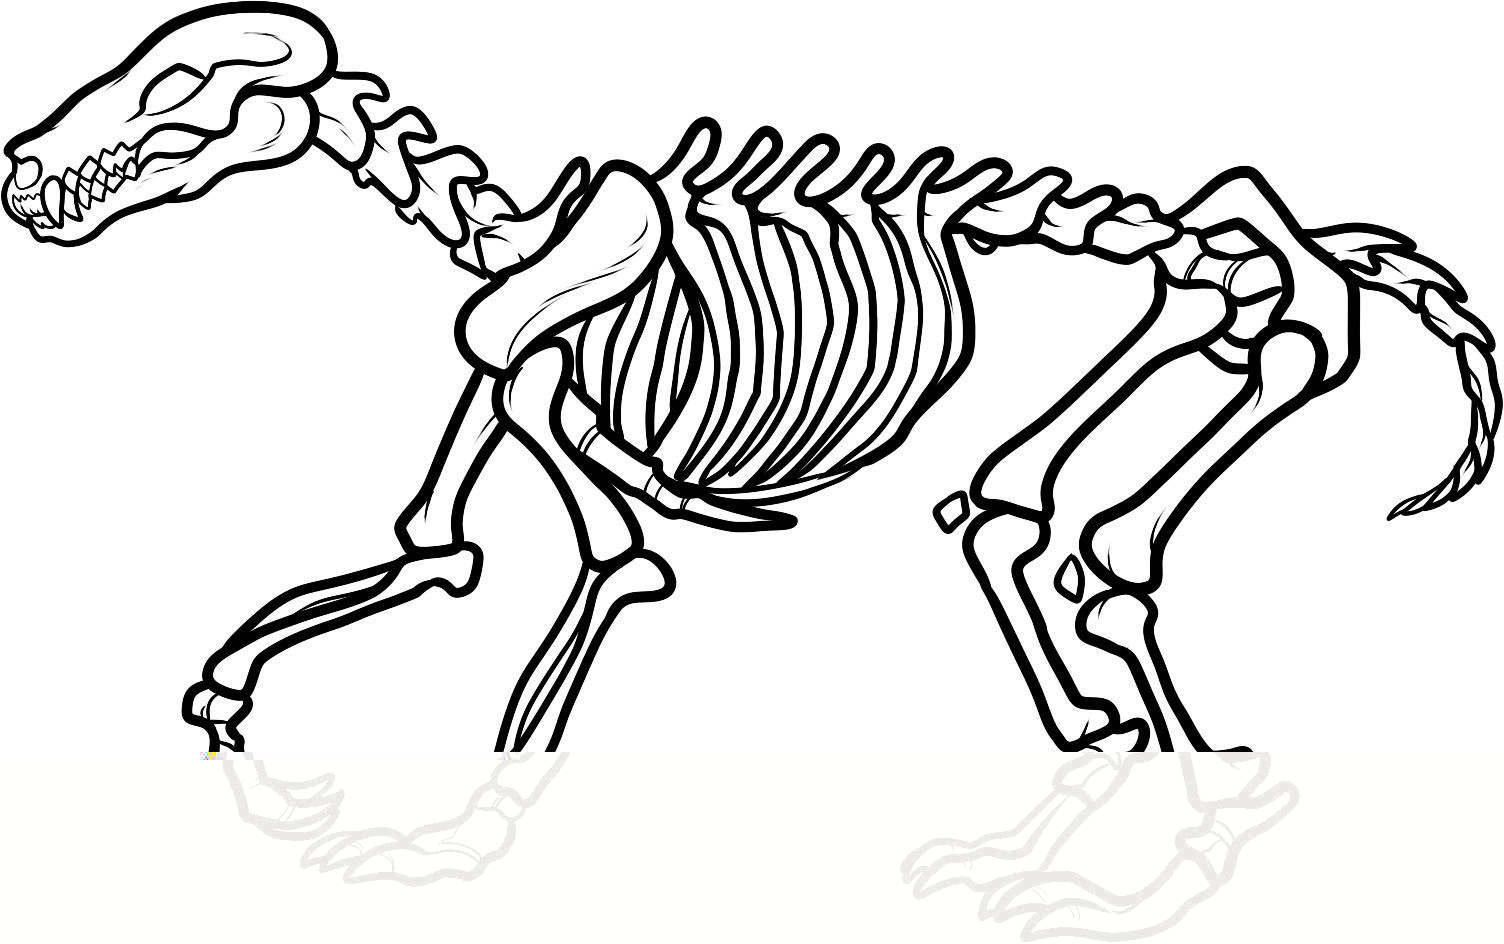 Dinosaur bones pages and. Bone clipart coloring page